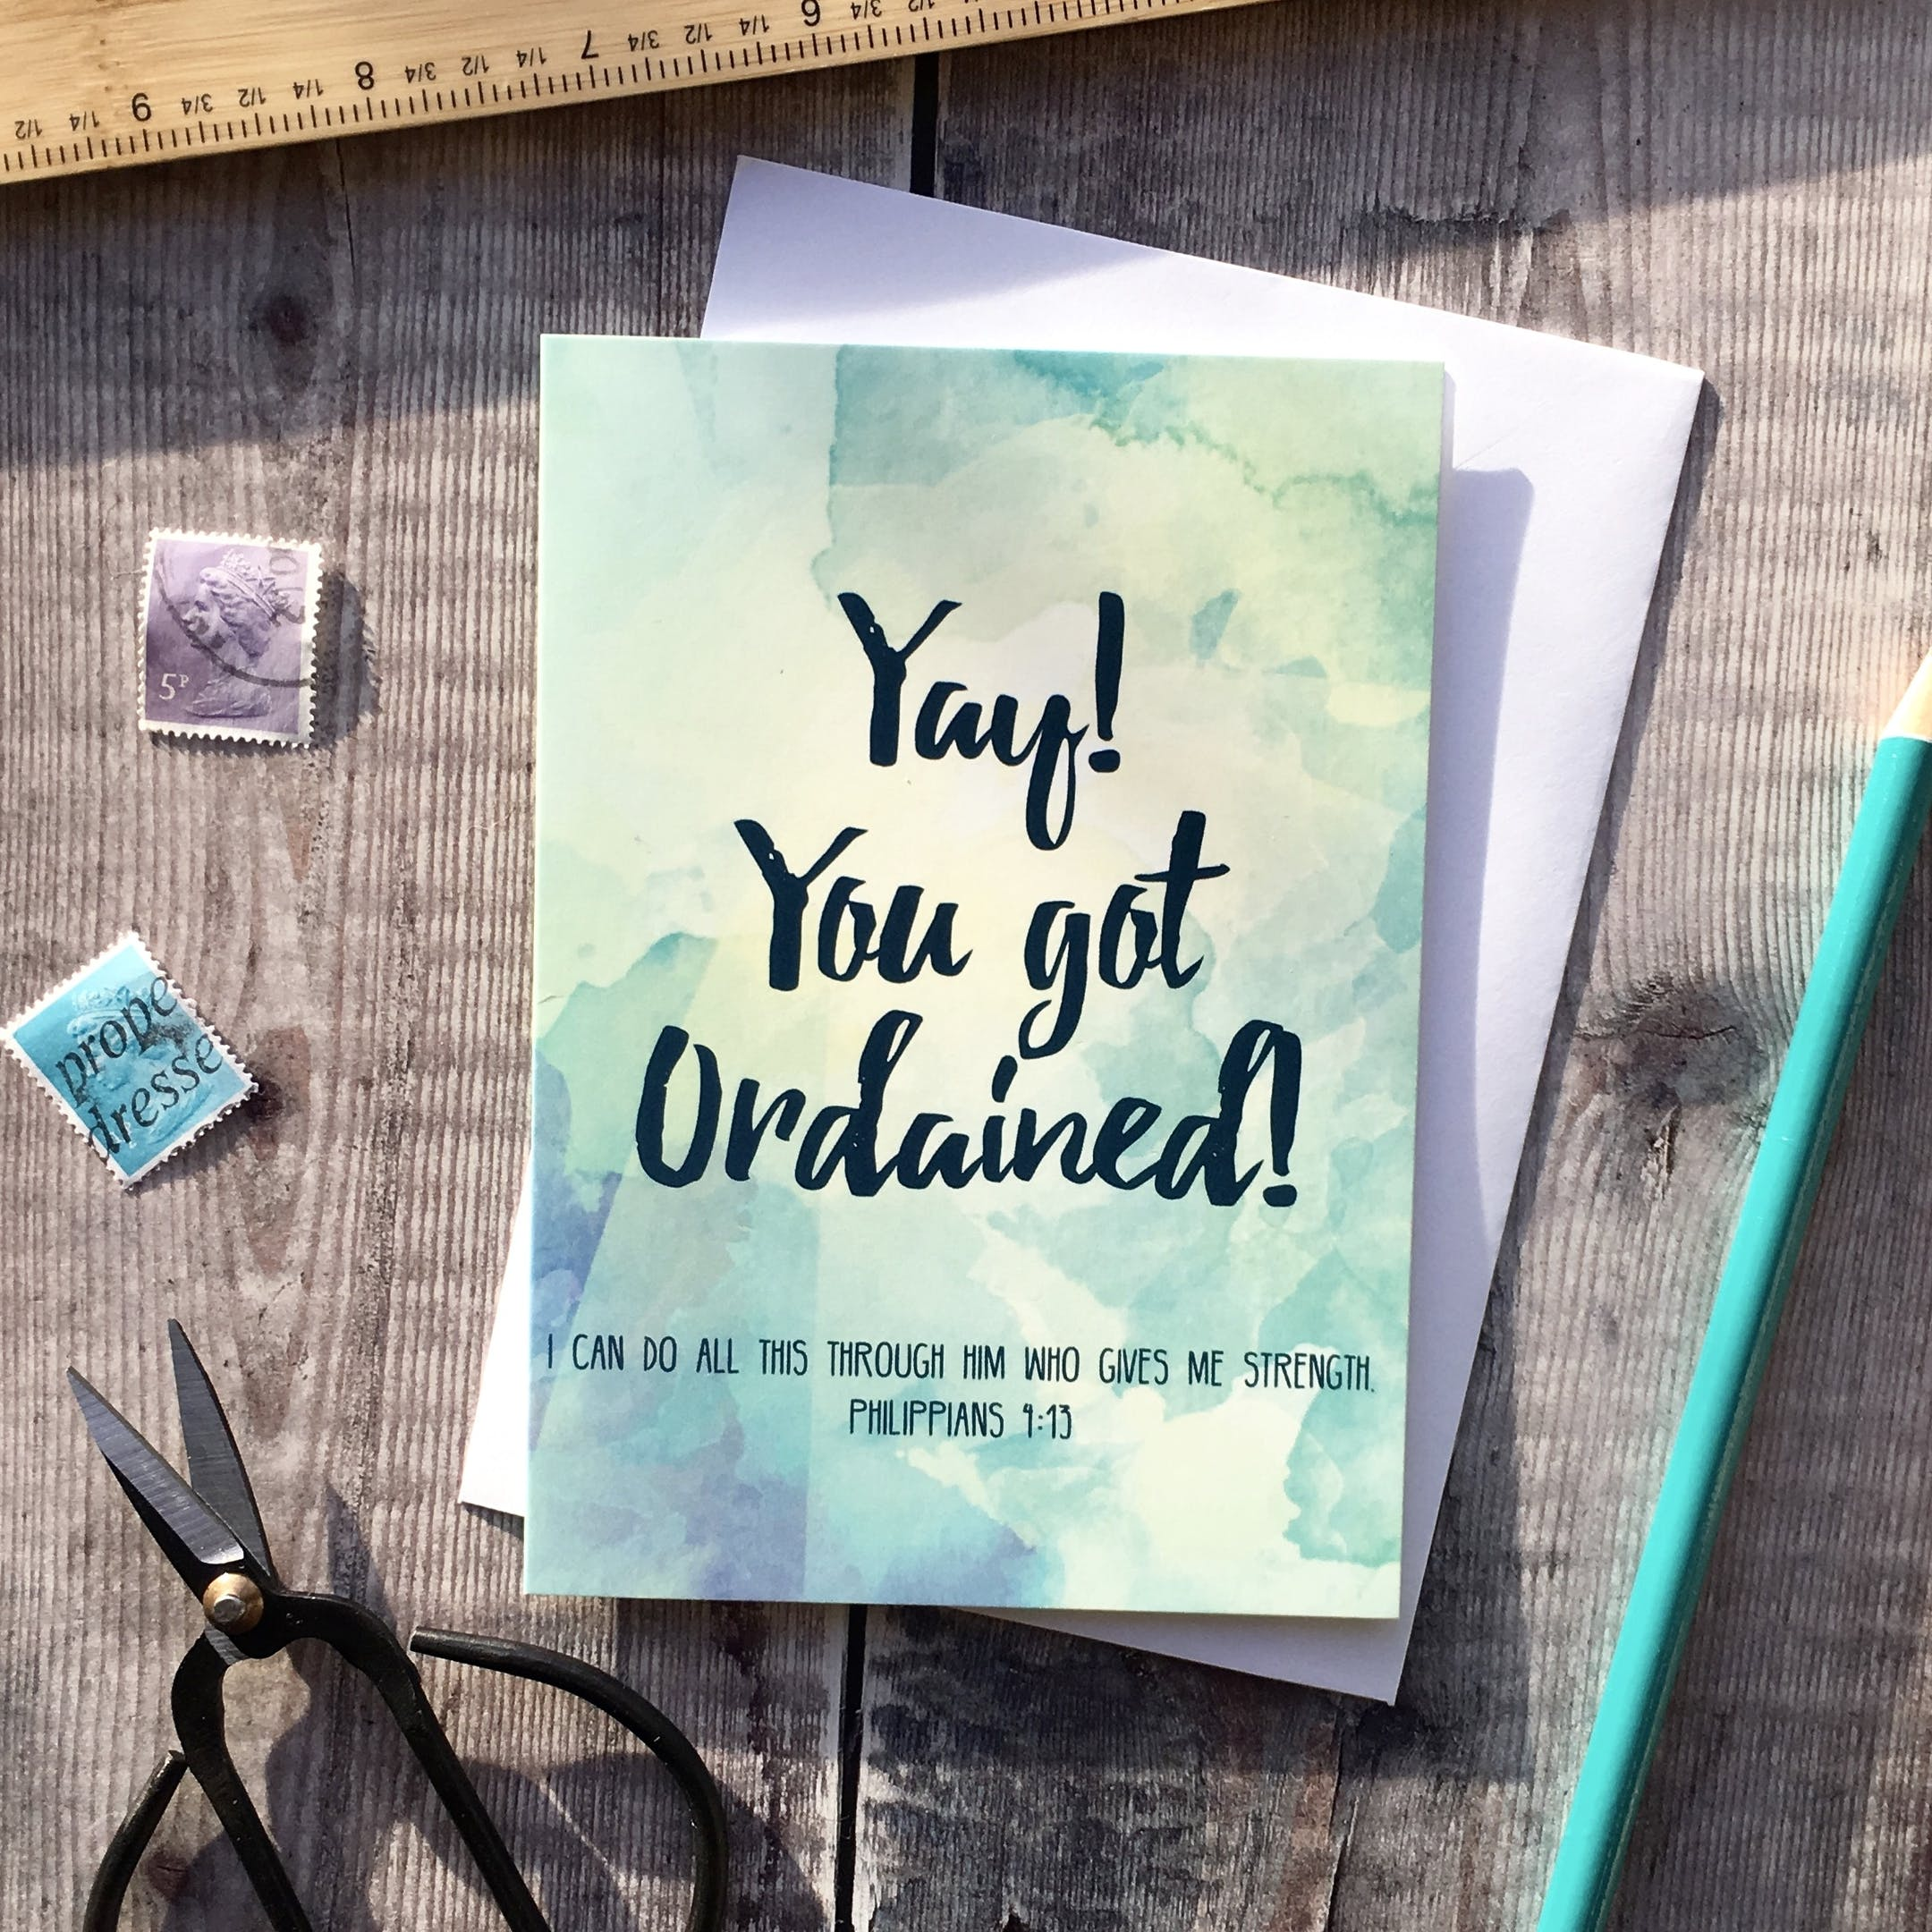 Yay You Got Ordained Philippians 4:13 Card - Izzy and Pop